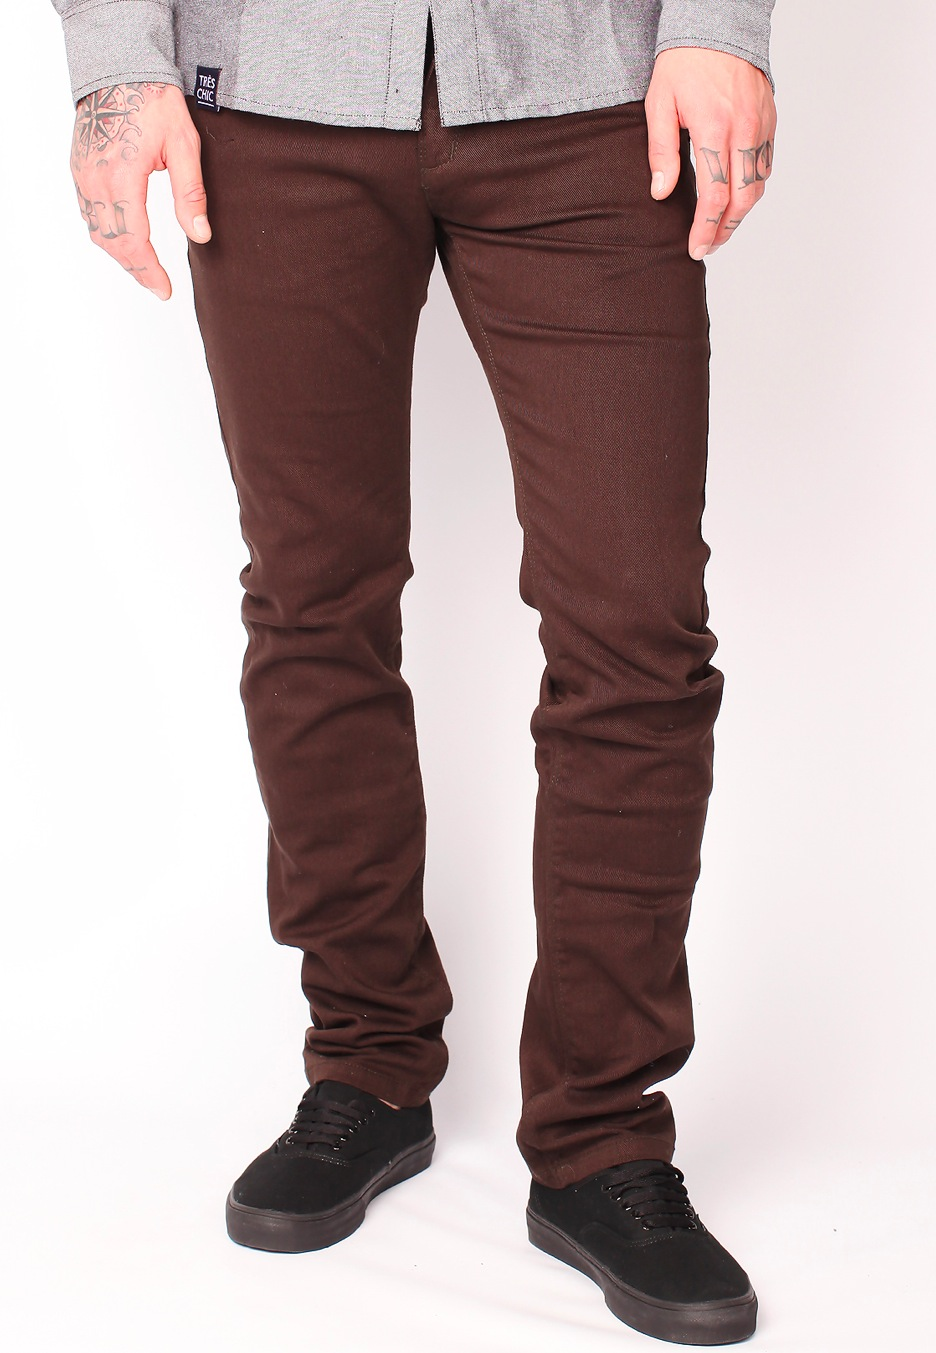 REELL - Skin Brown - Jeans